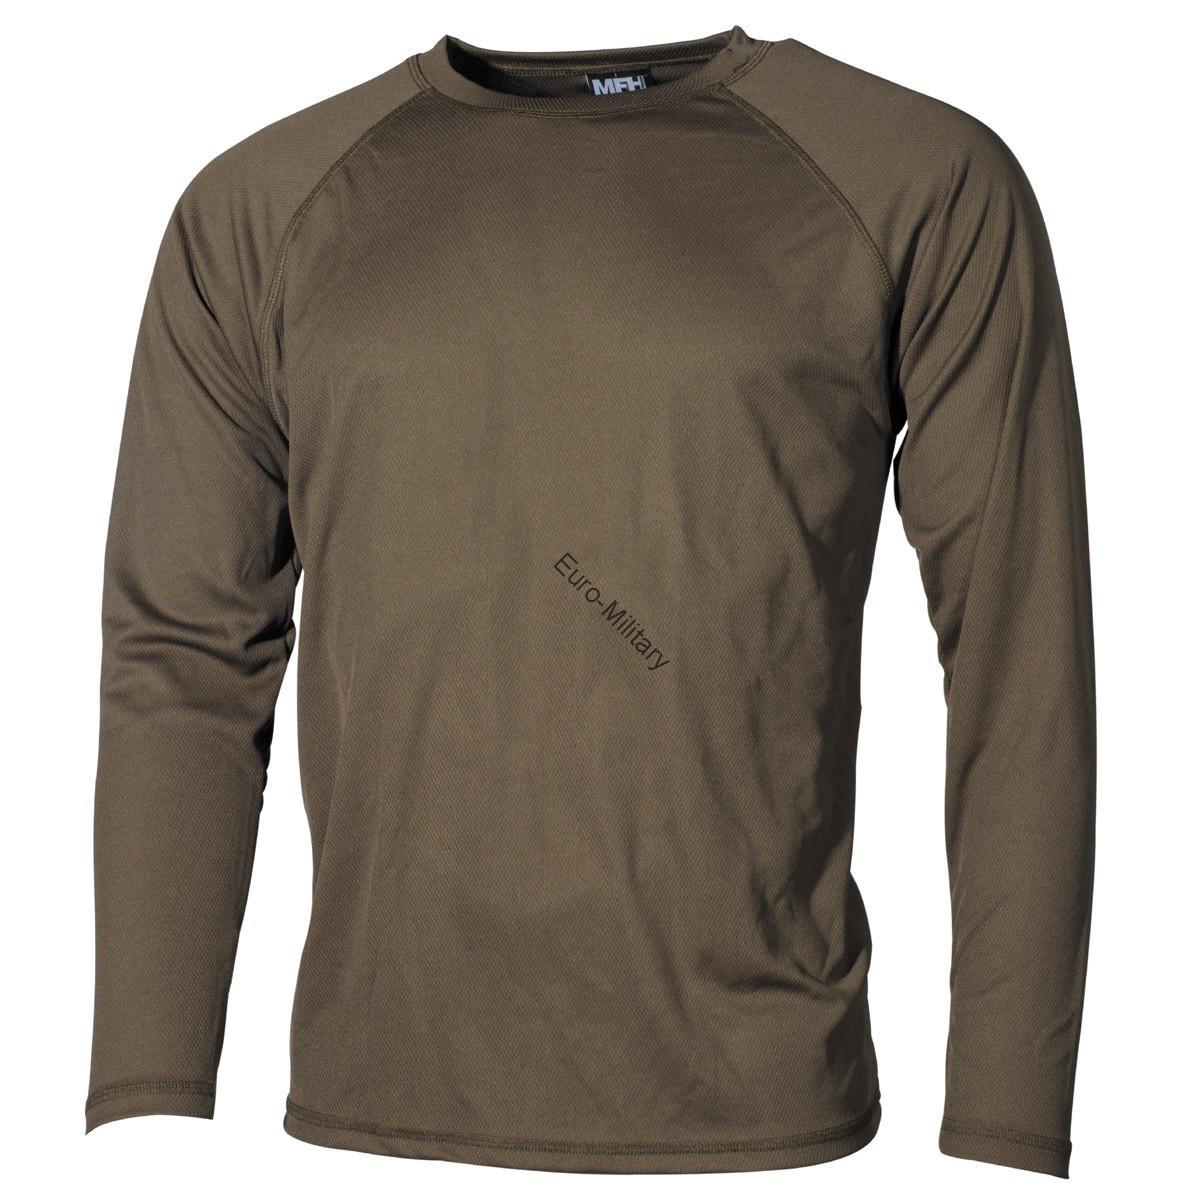 Military/Outdoor Undershirt Level 1 Gen.3 Lightweight and Quick Drying - Green